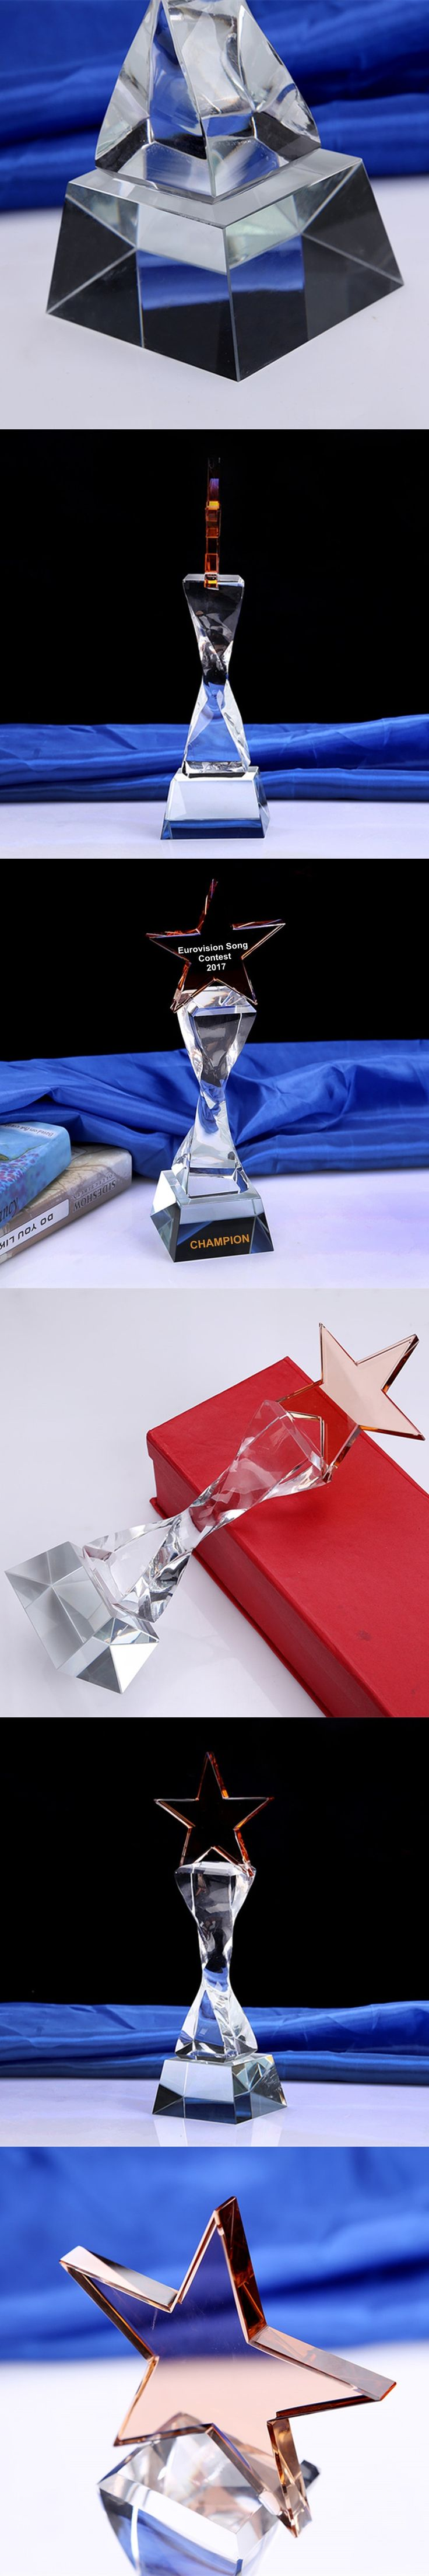 Customized Crystal Trophy Engraved Logo Or Words Glass Award Eurovision Song Contest Champion Awards Cup Sports Souvenirs